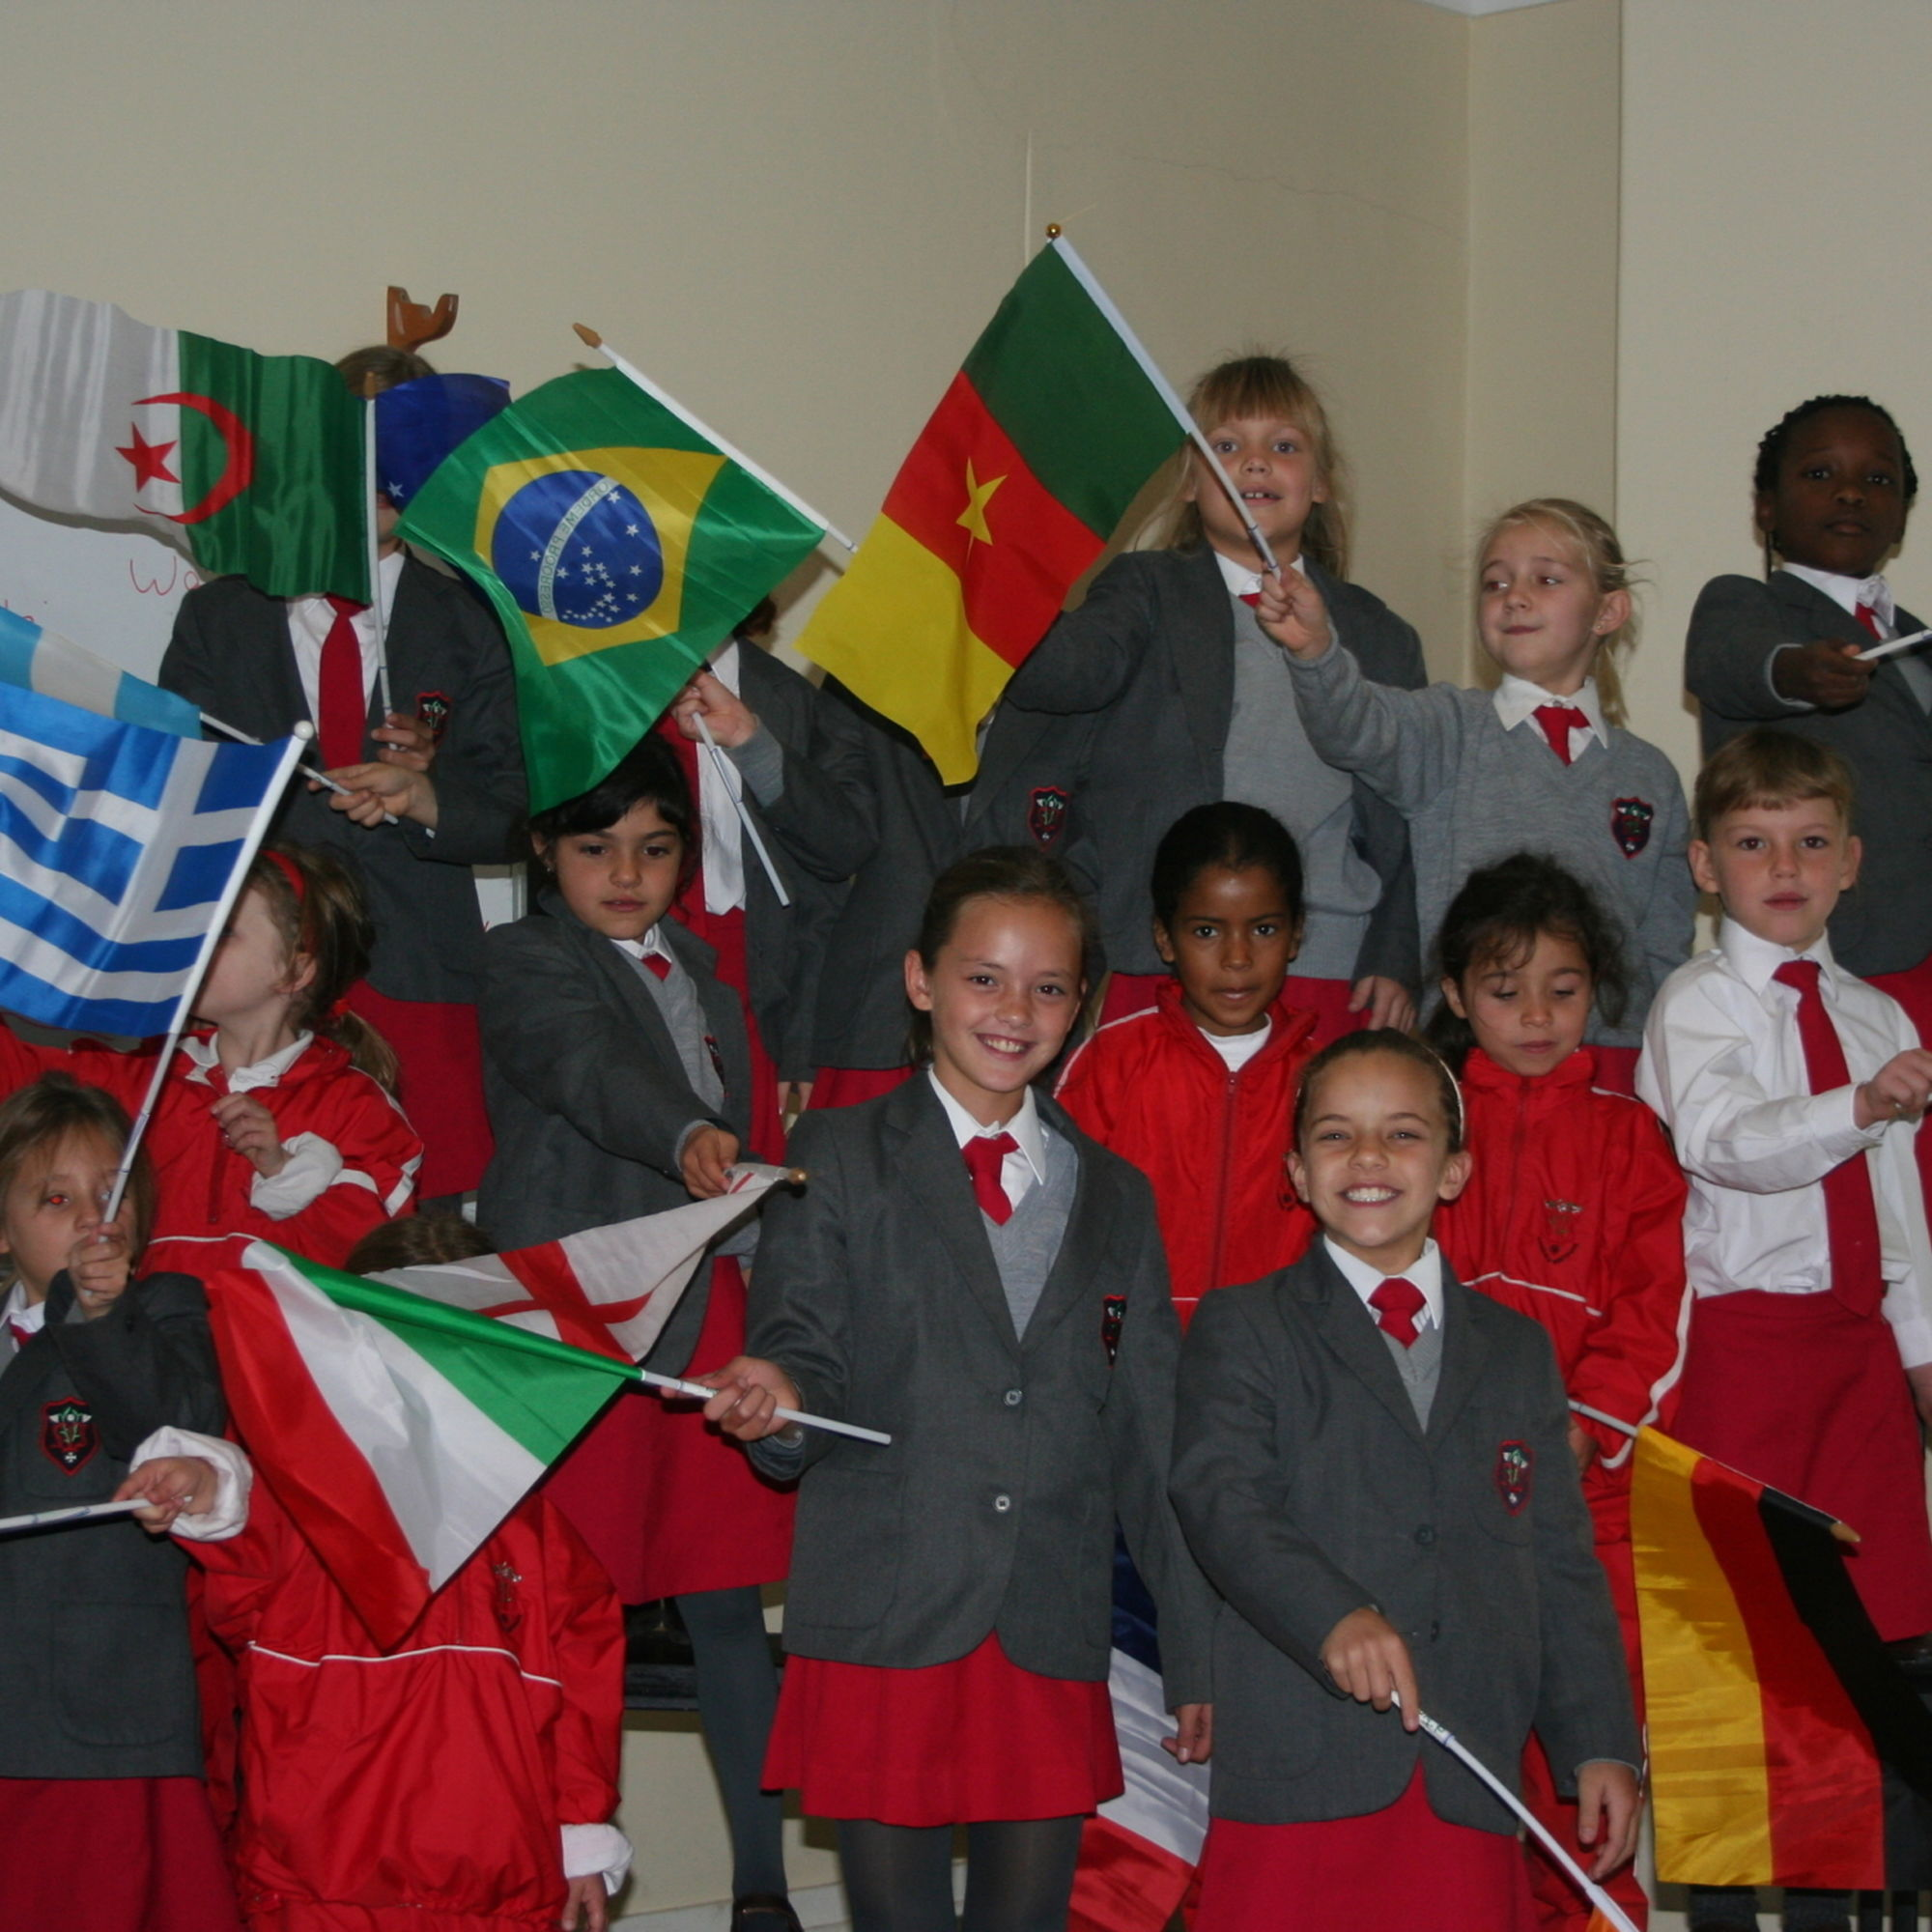 Junior school girls showing their support for the fifa world cup